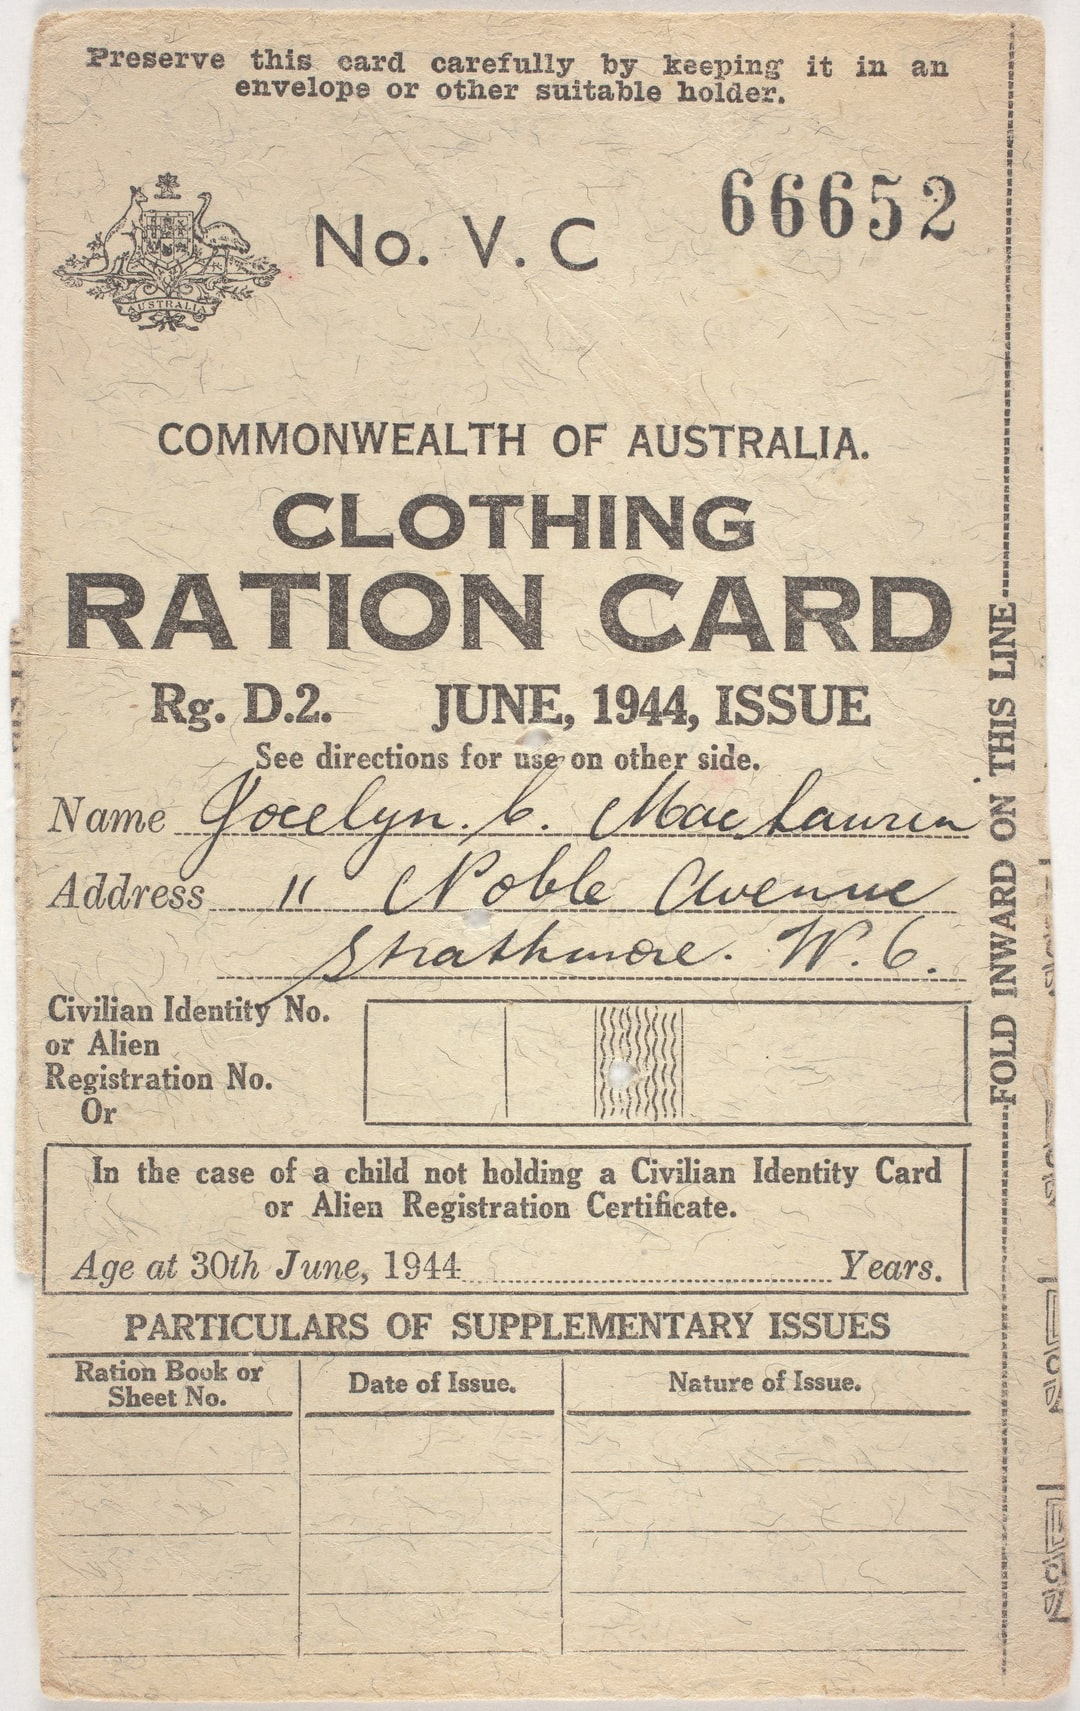 Ration Card - Clothing